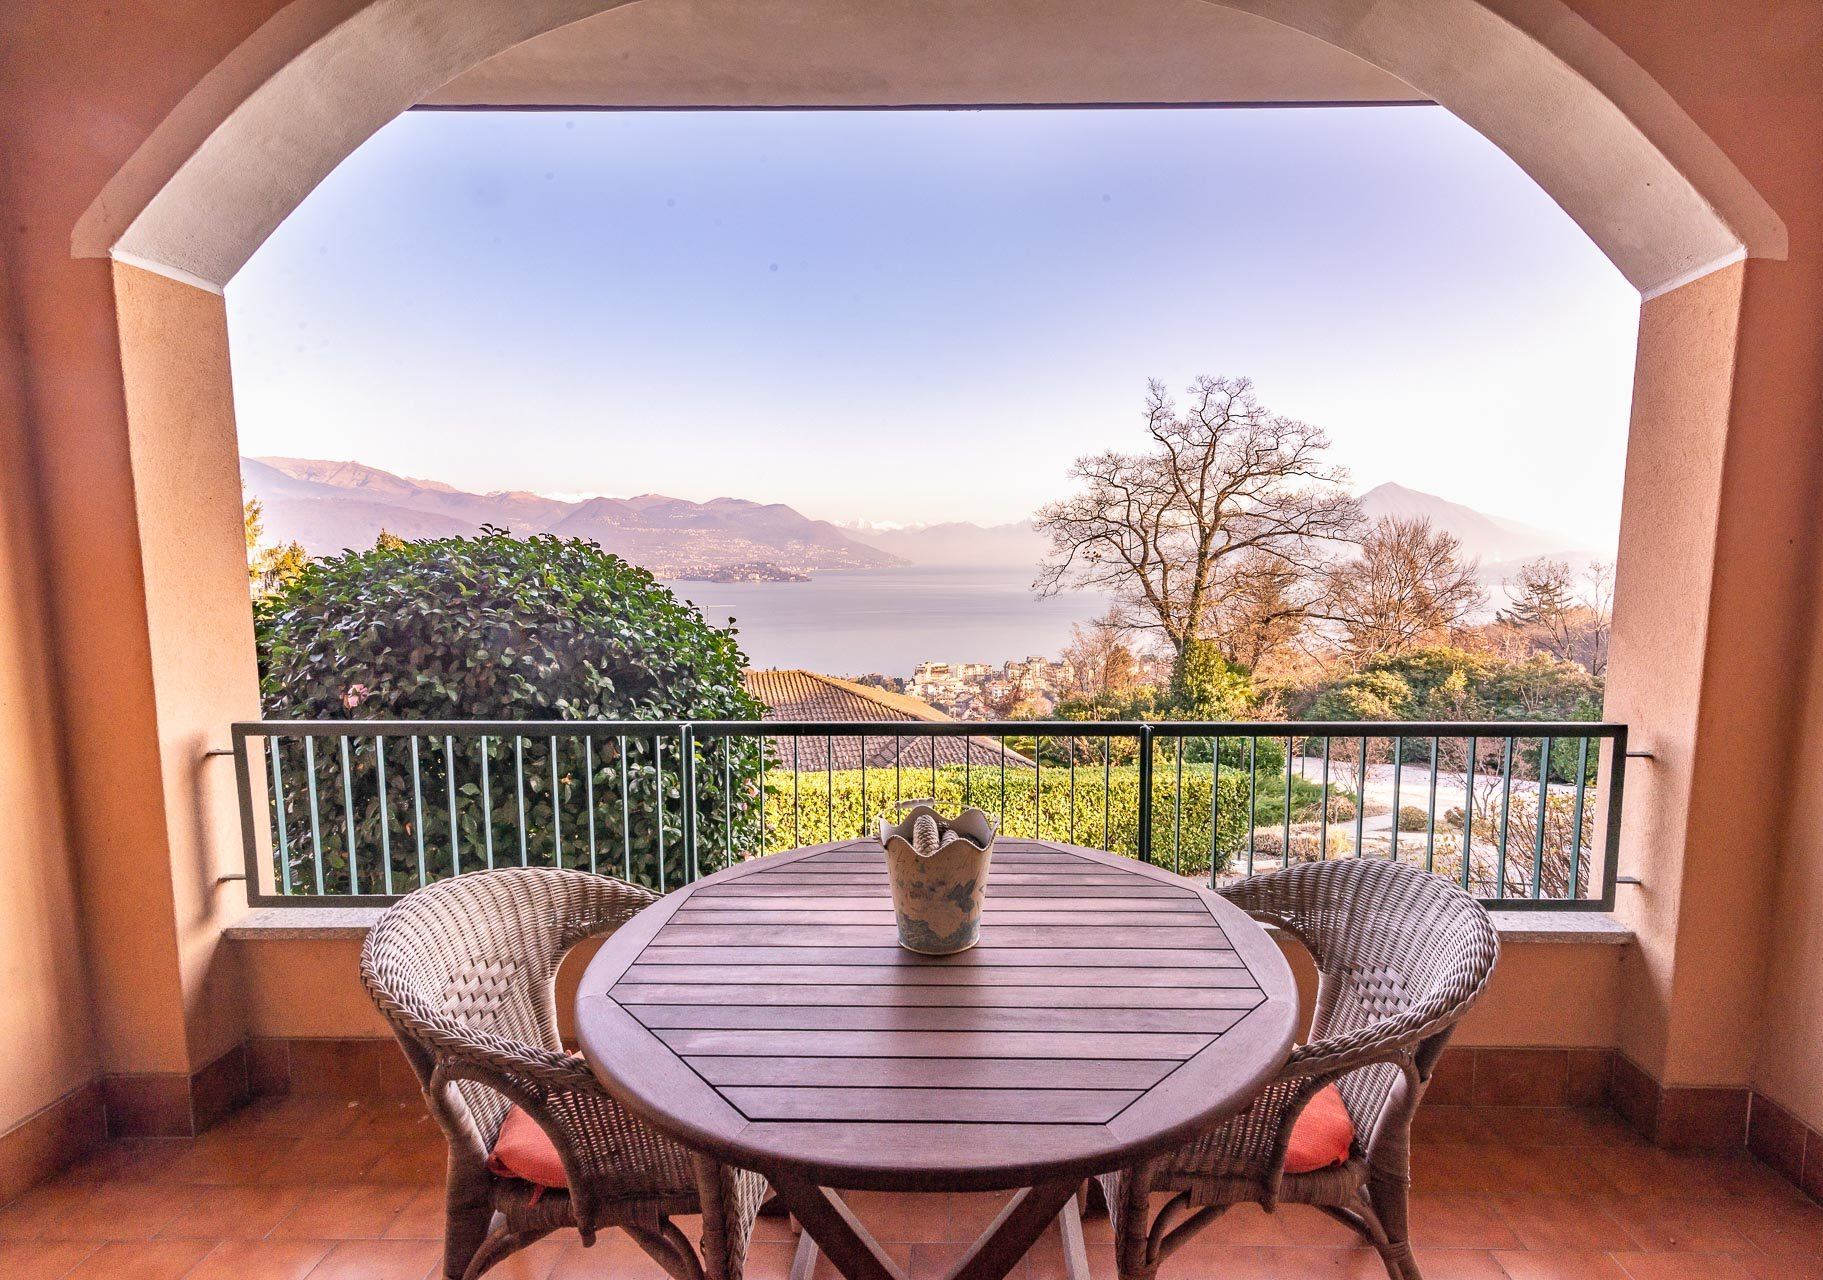 Apartment for sale in Stresa in a residence - terrace facing the lake